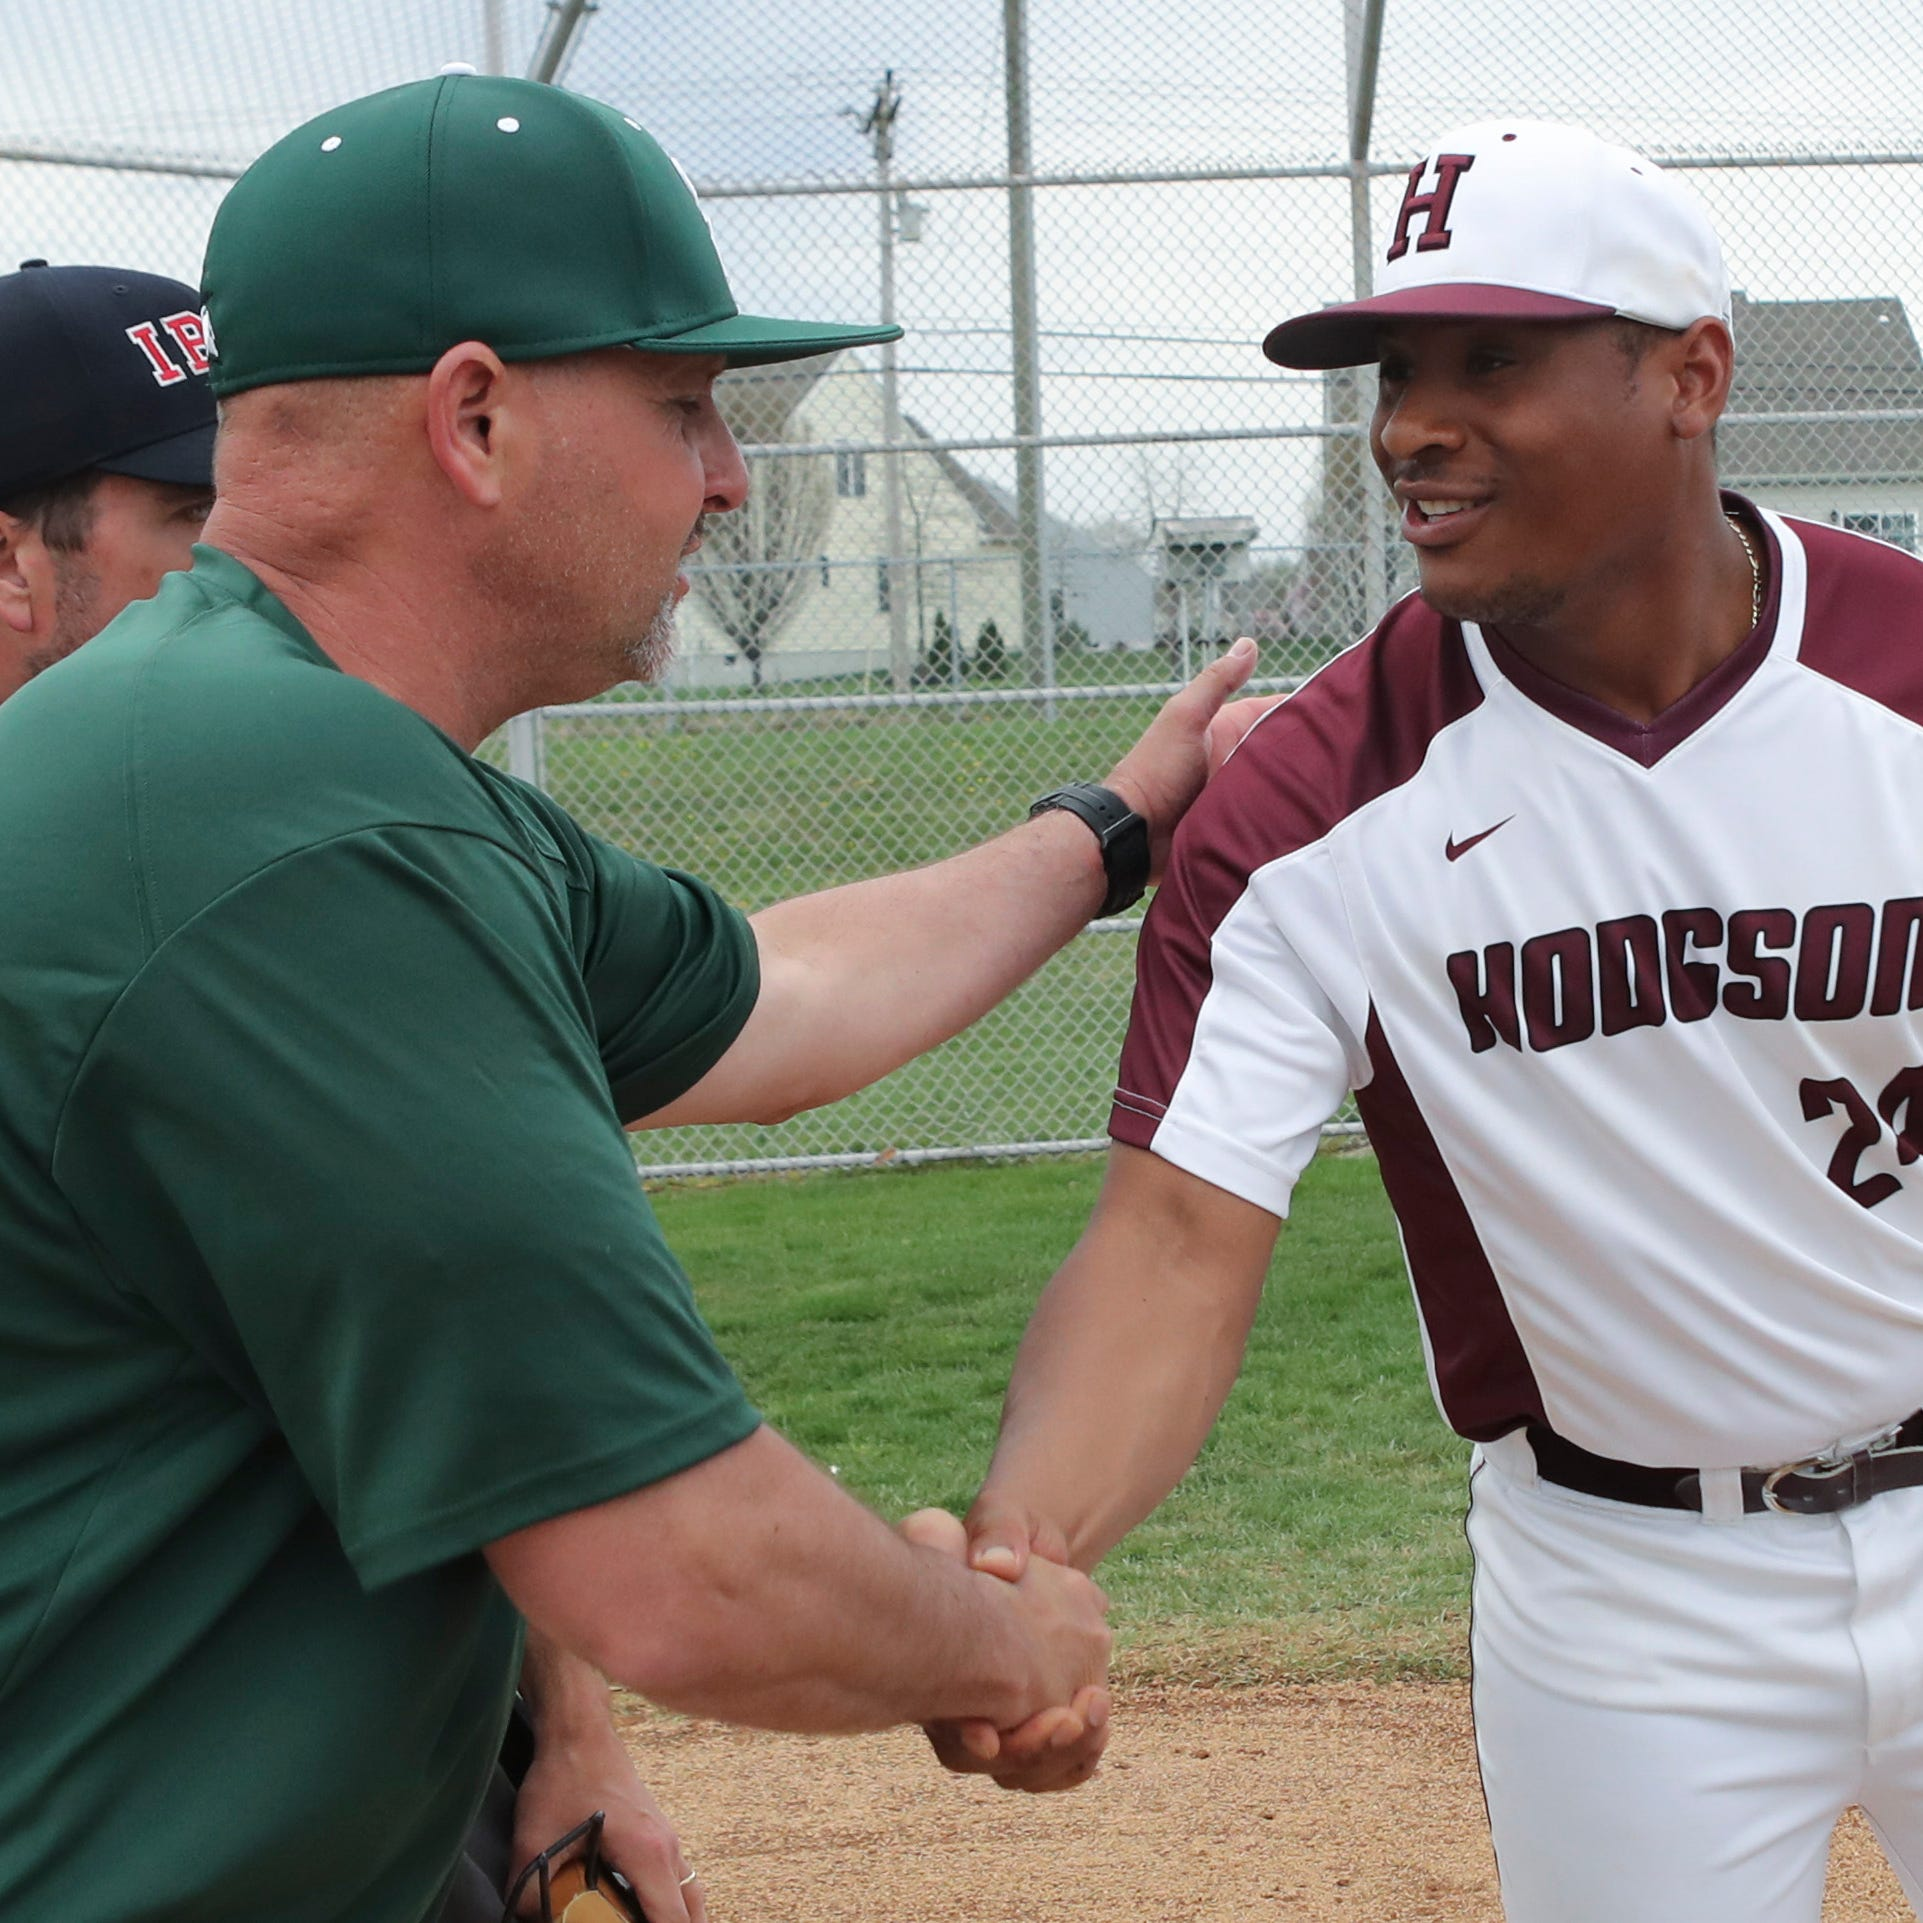 Former UD player thrives as Hodgson baseball coach less than a year after leaving school